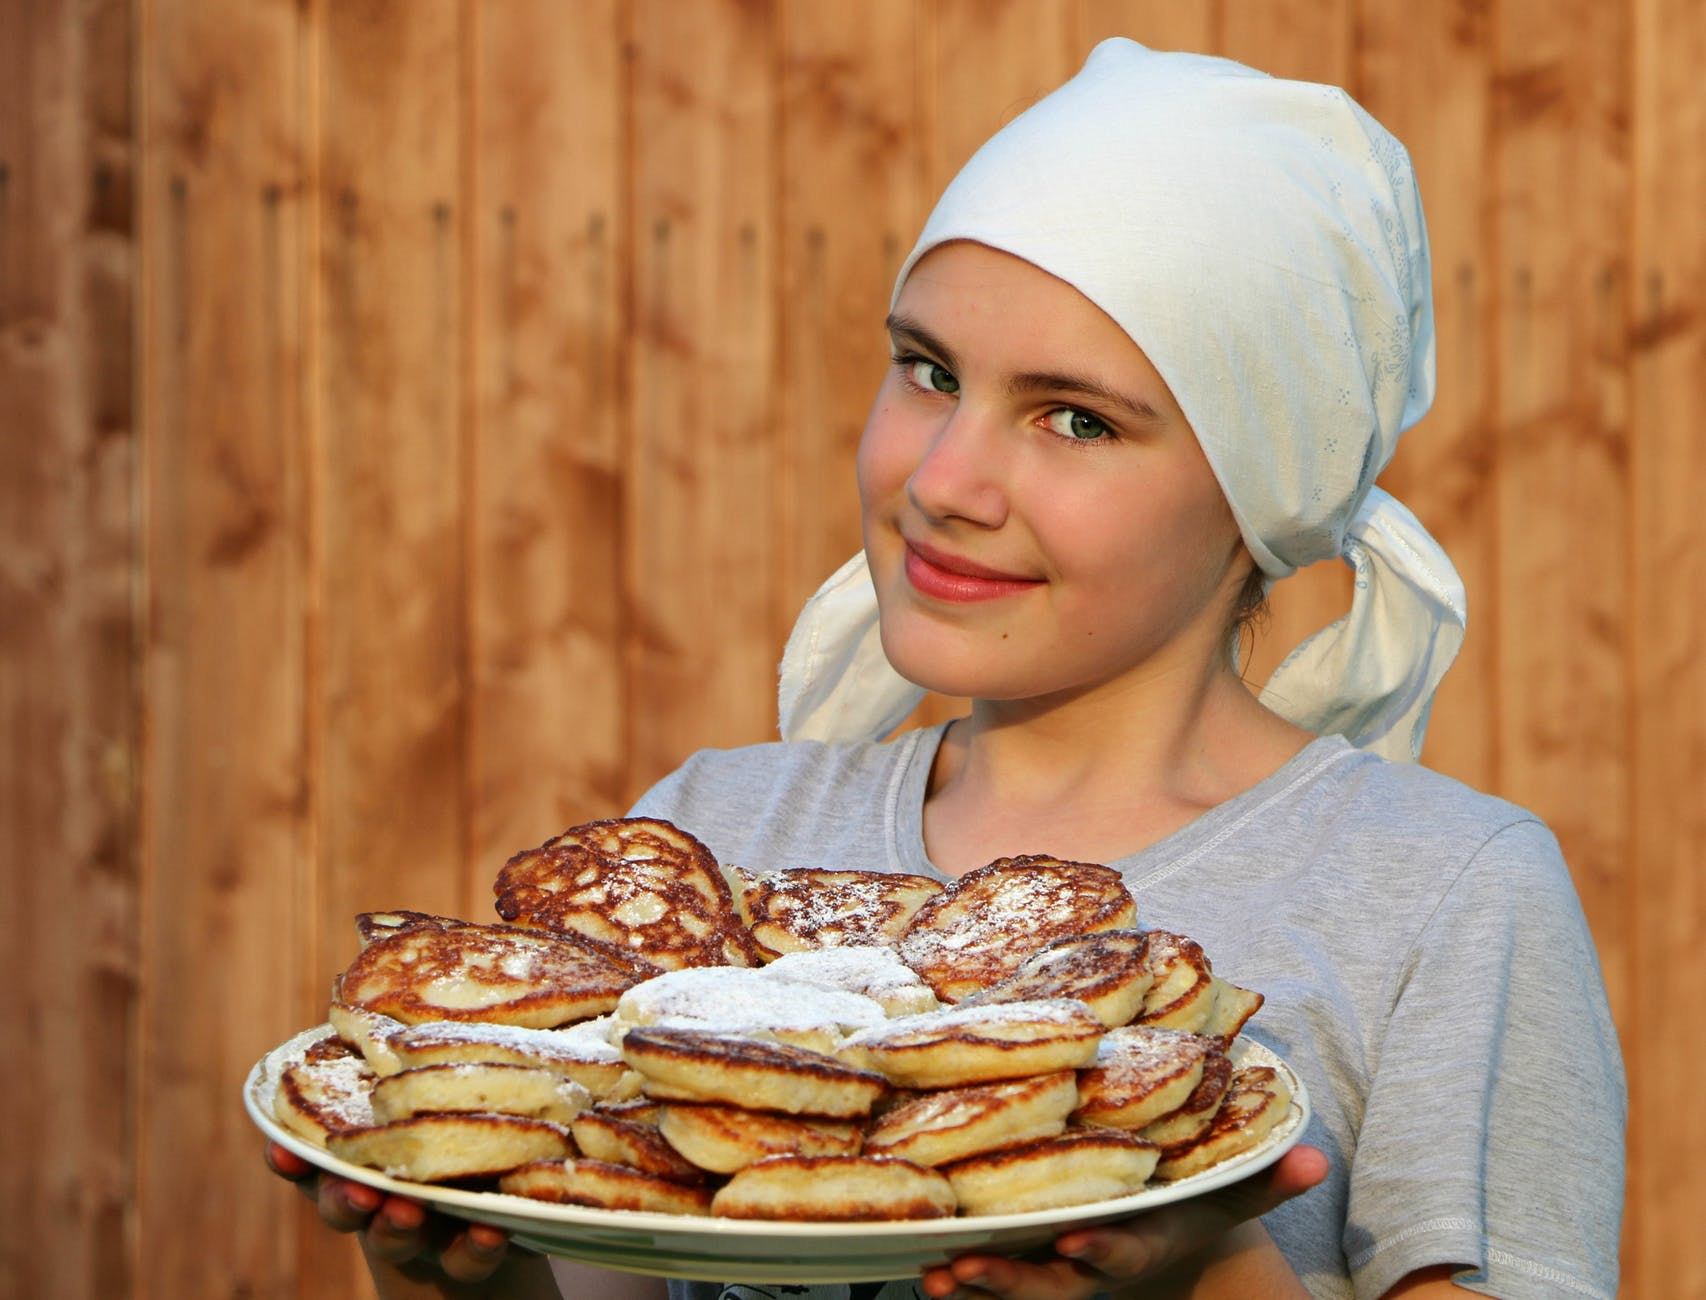 woman in grey crew neck shirt holding a white ceramic plate with pancakes